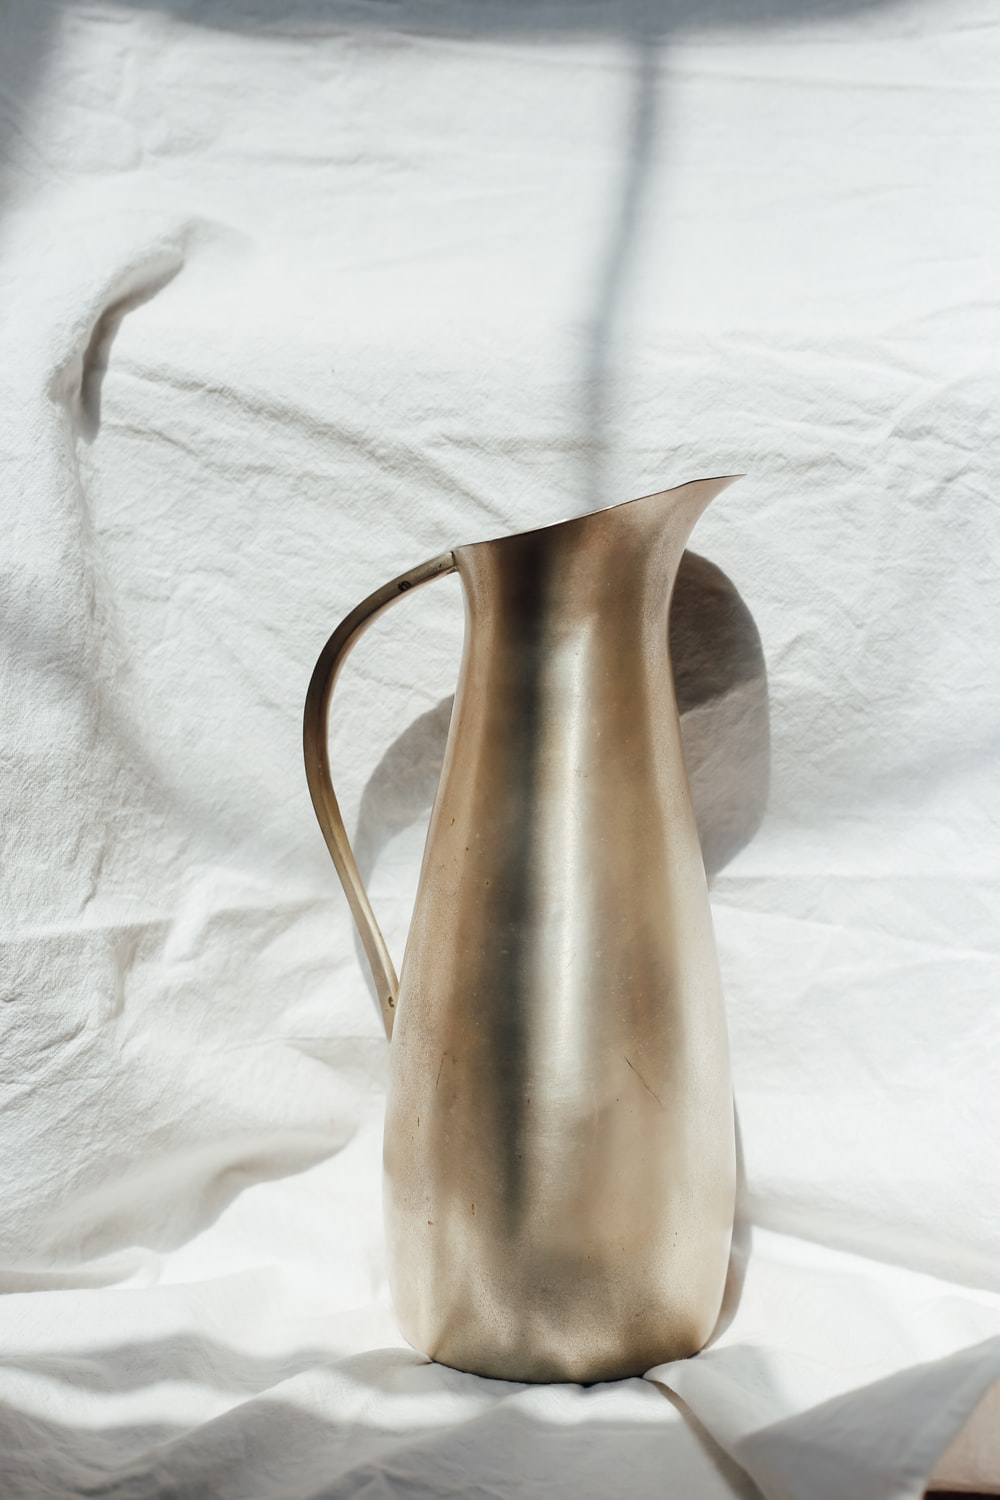 stainless steel pitcher on white textile